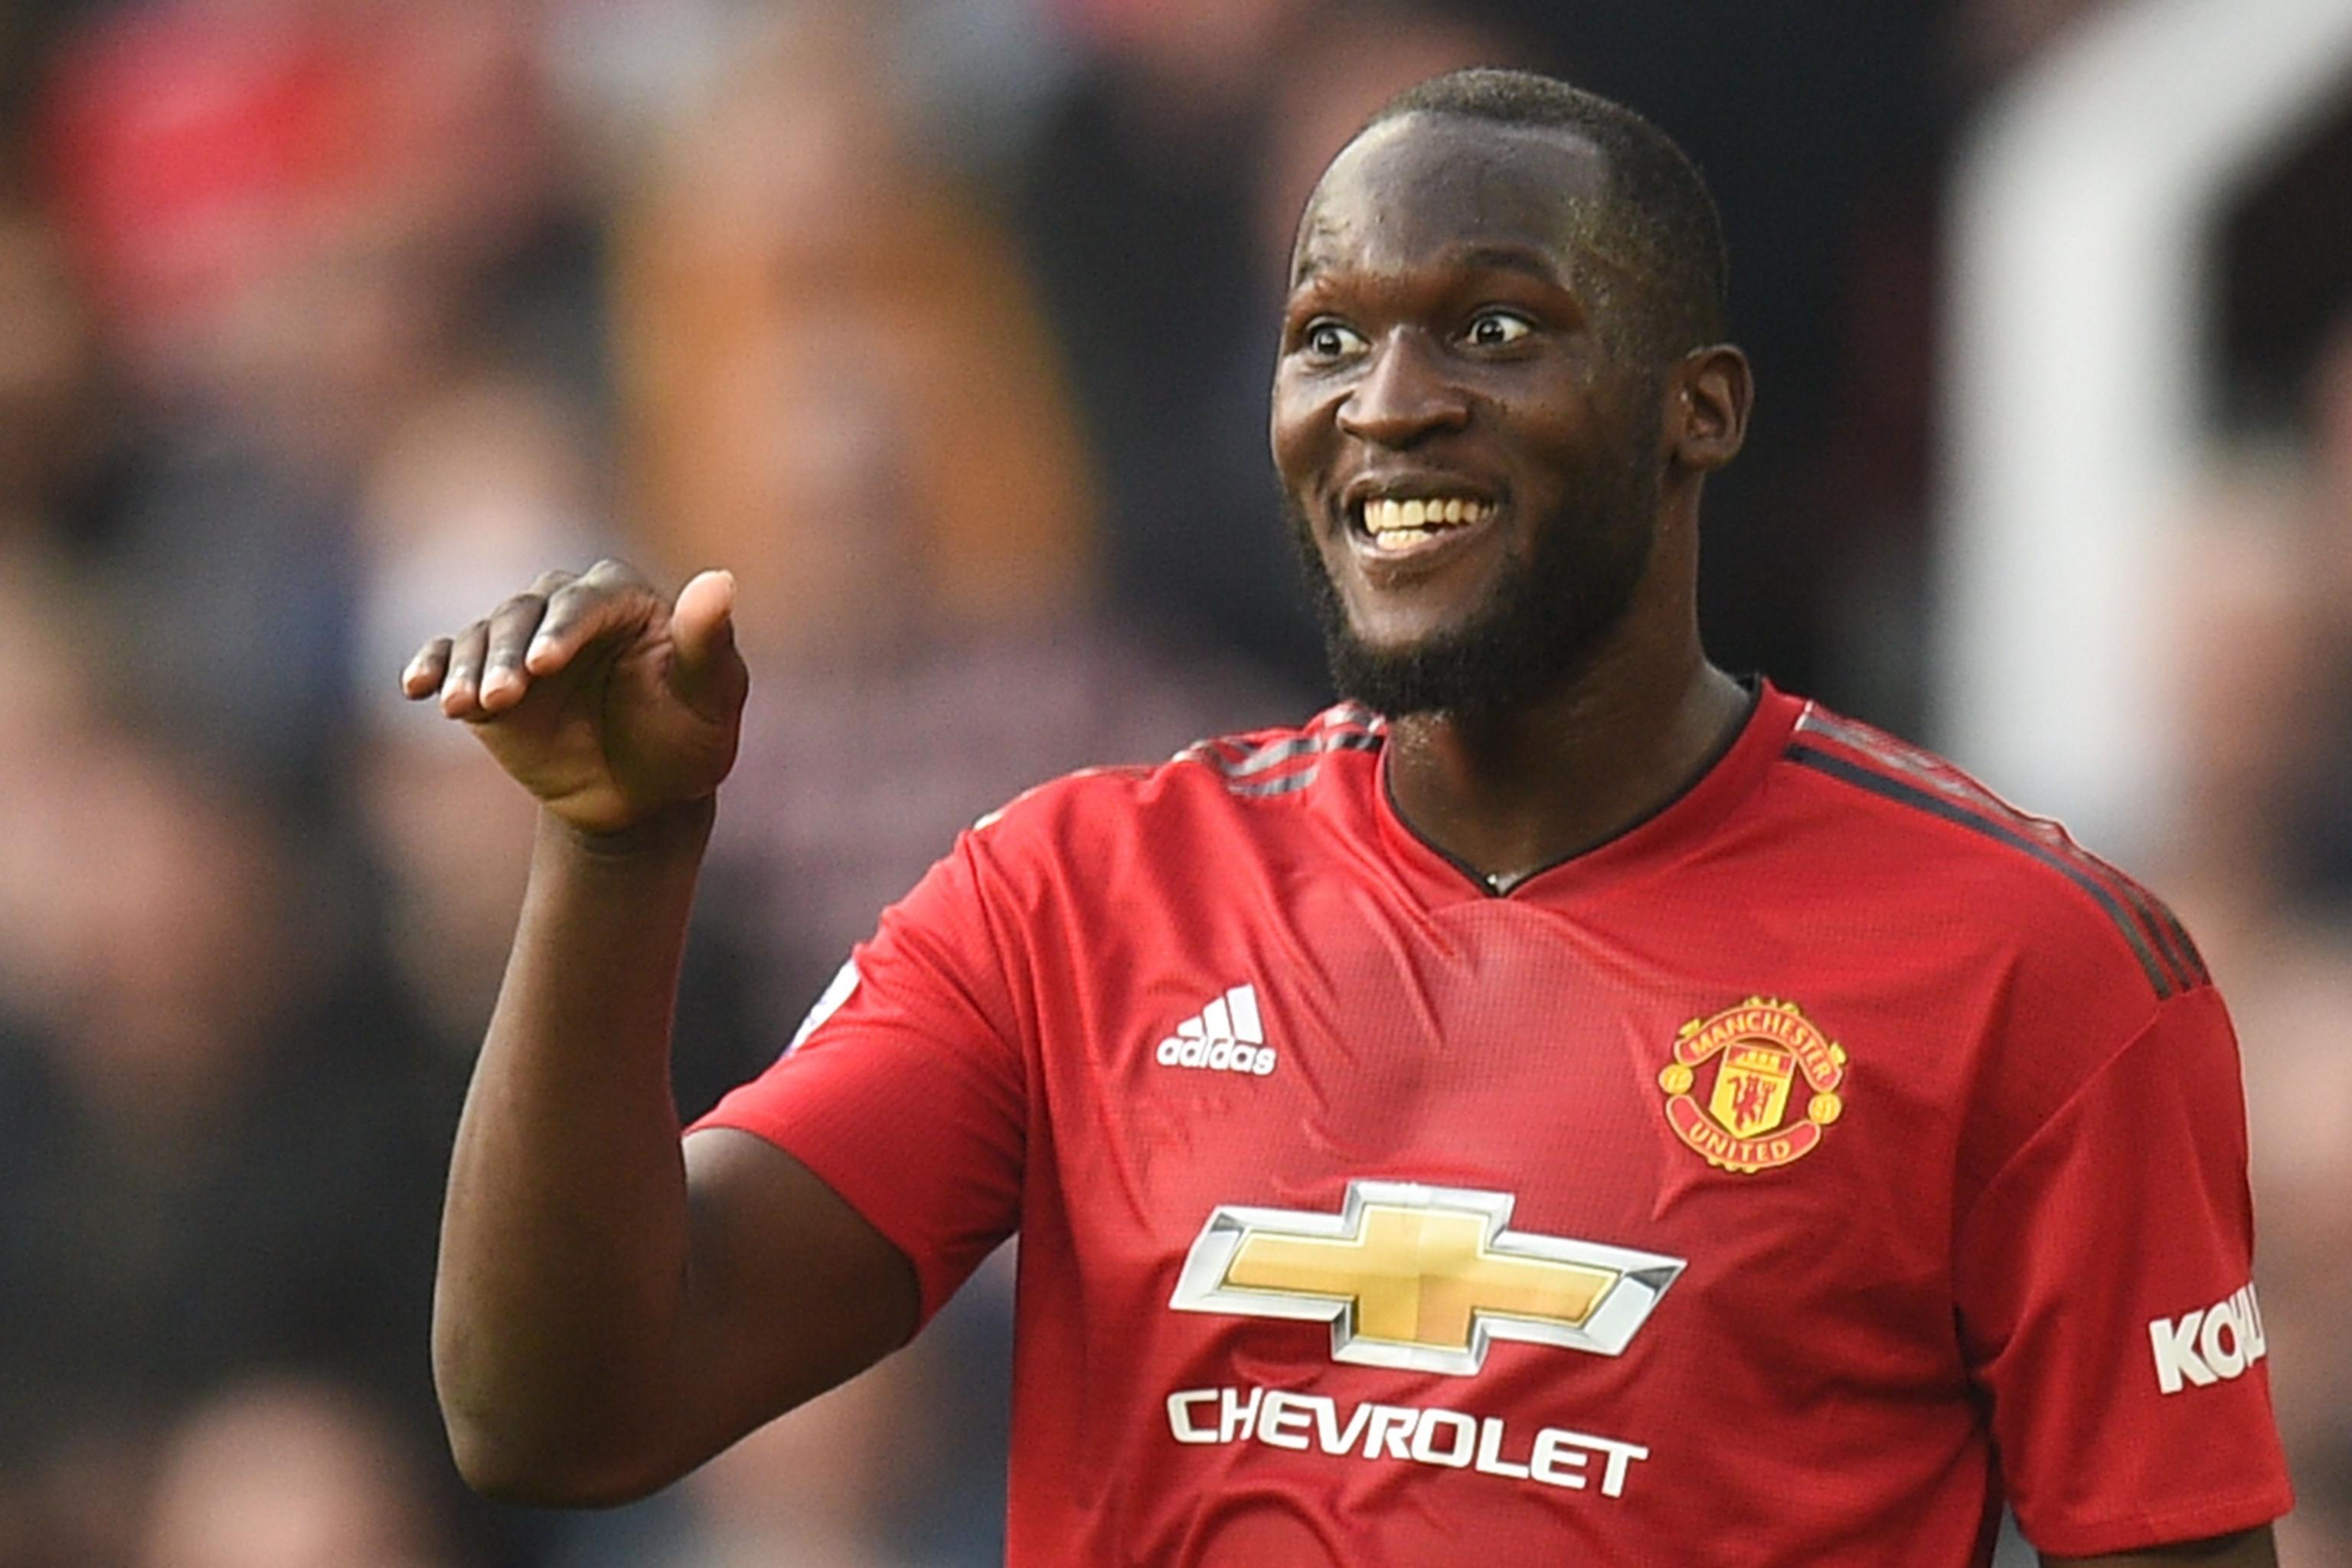 Romelu Lukaku Completes Transfer To Inter From Manchester United Bleacher Report Latest News Videos And Highlights